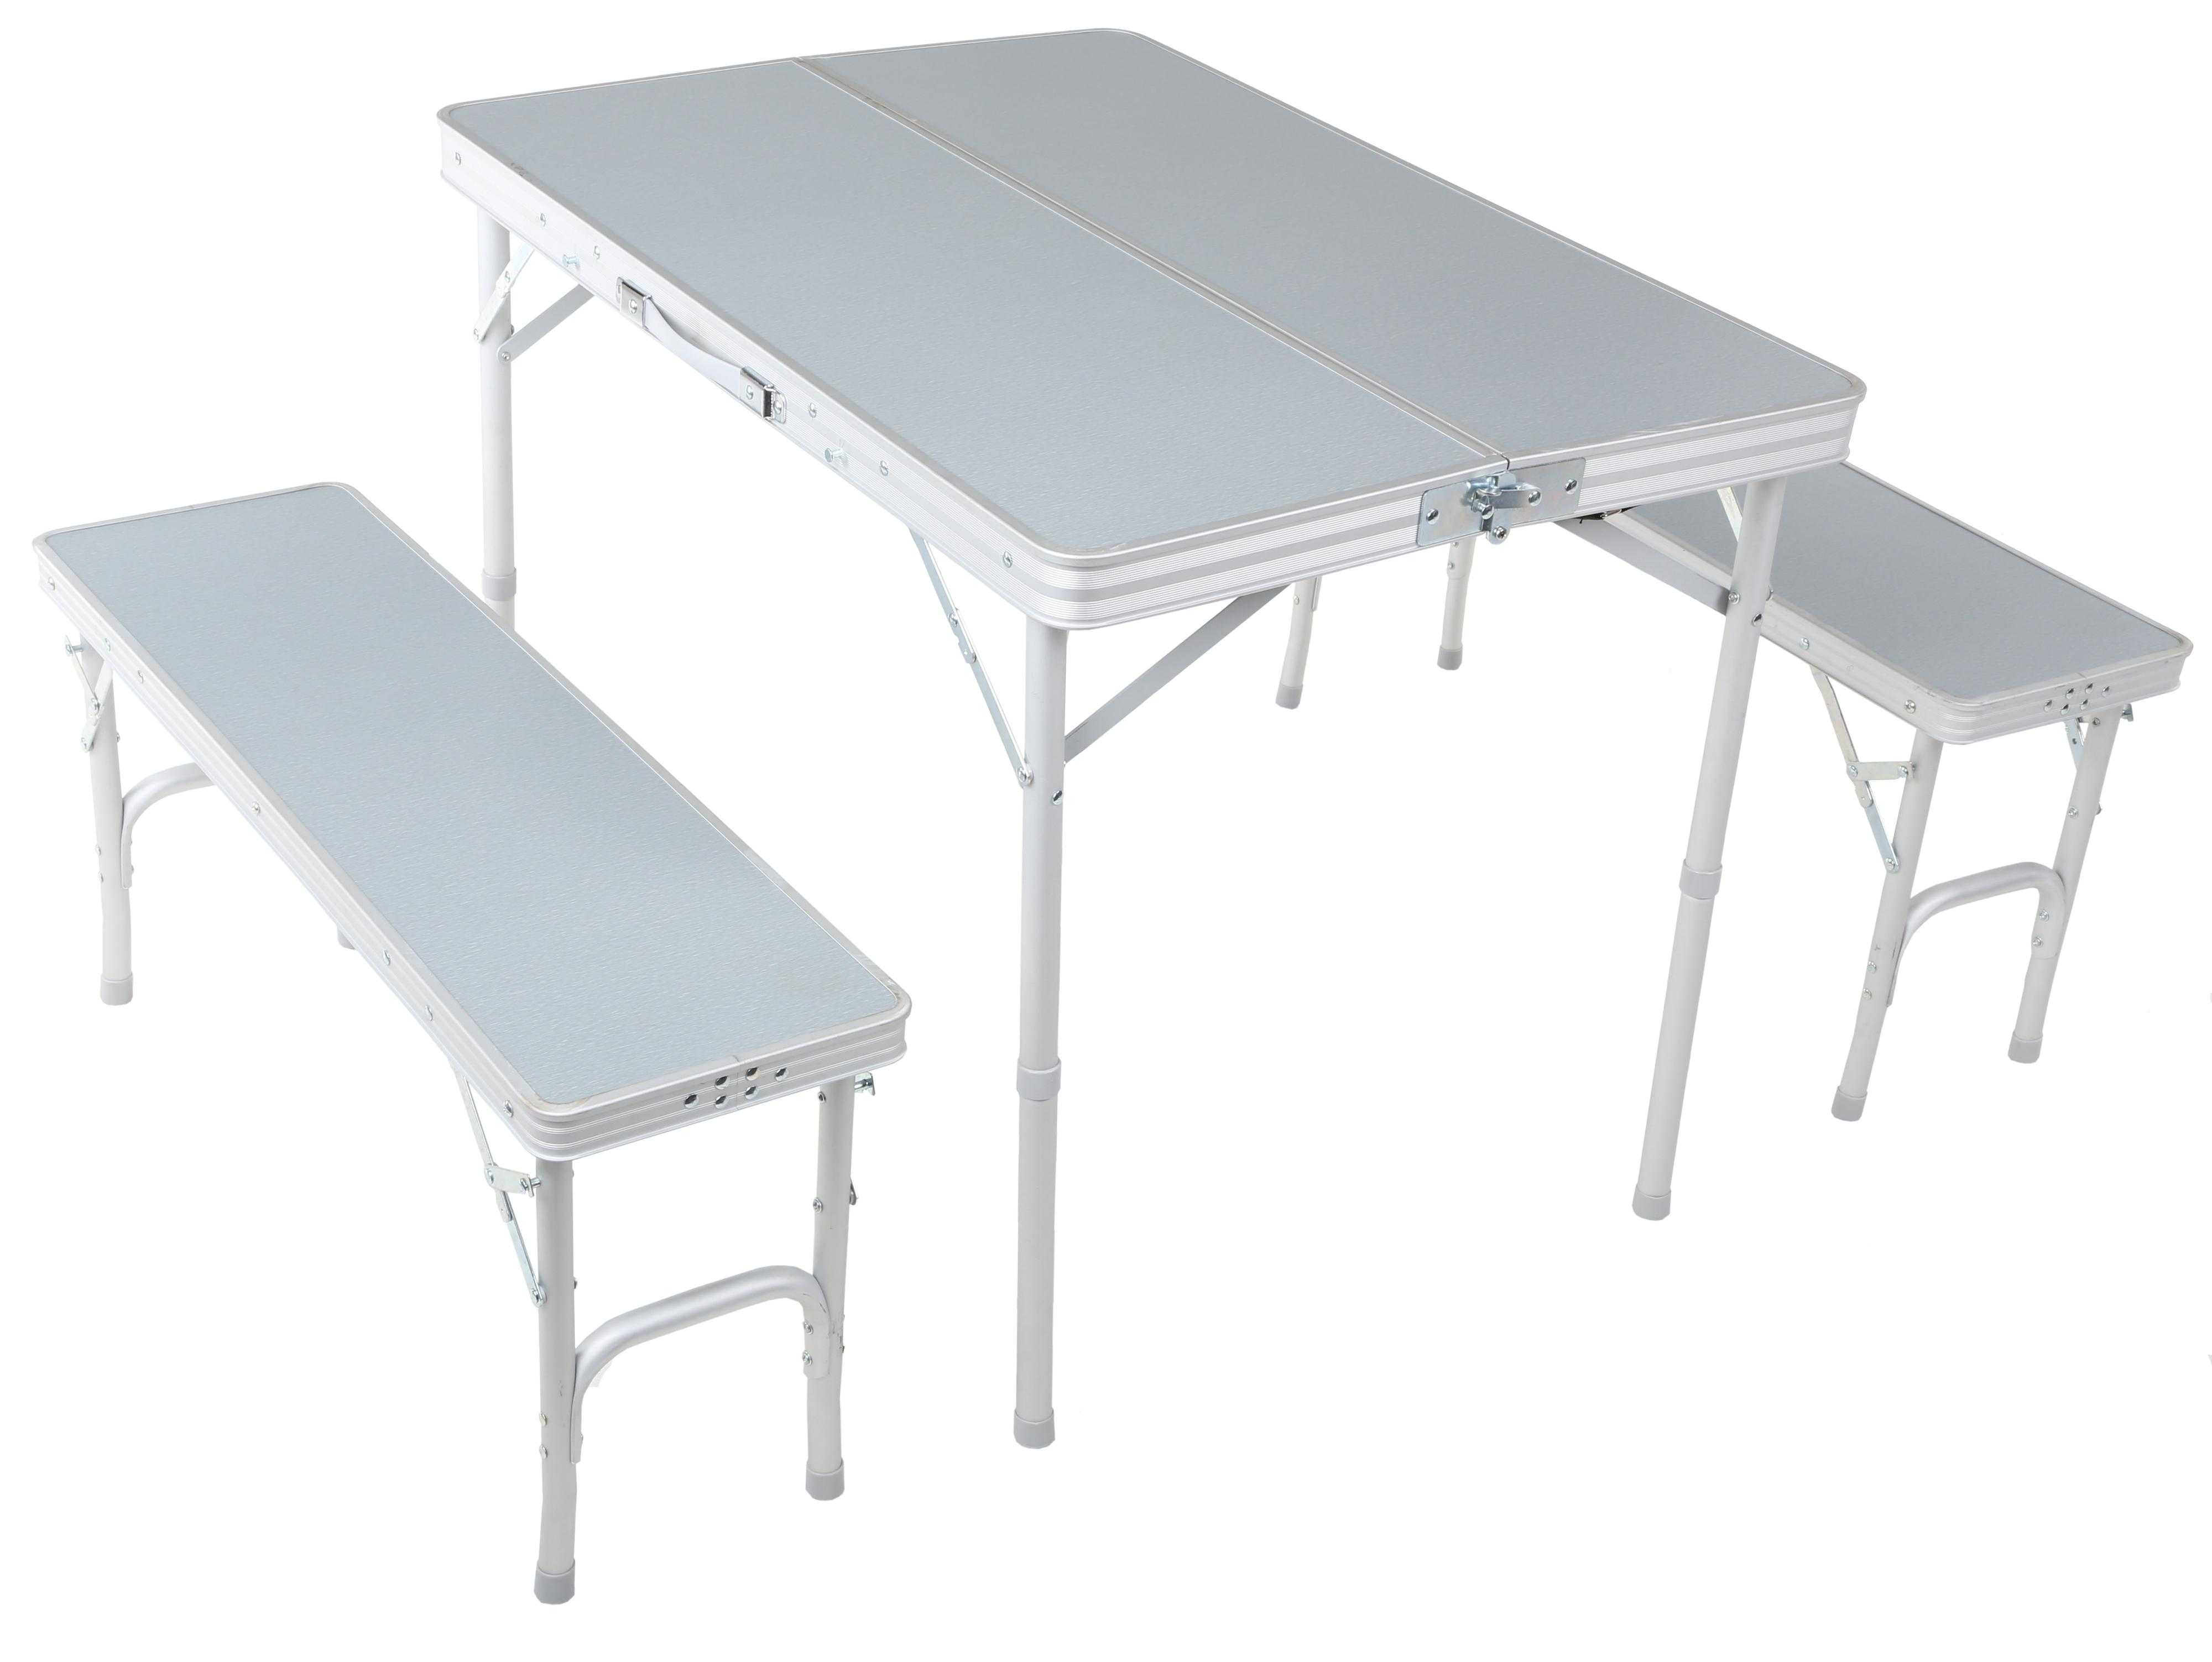 Exceptional Urban Escape Folding Table And Bench Set